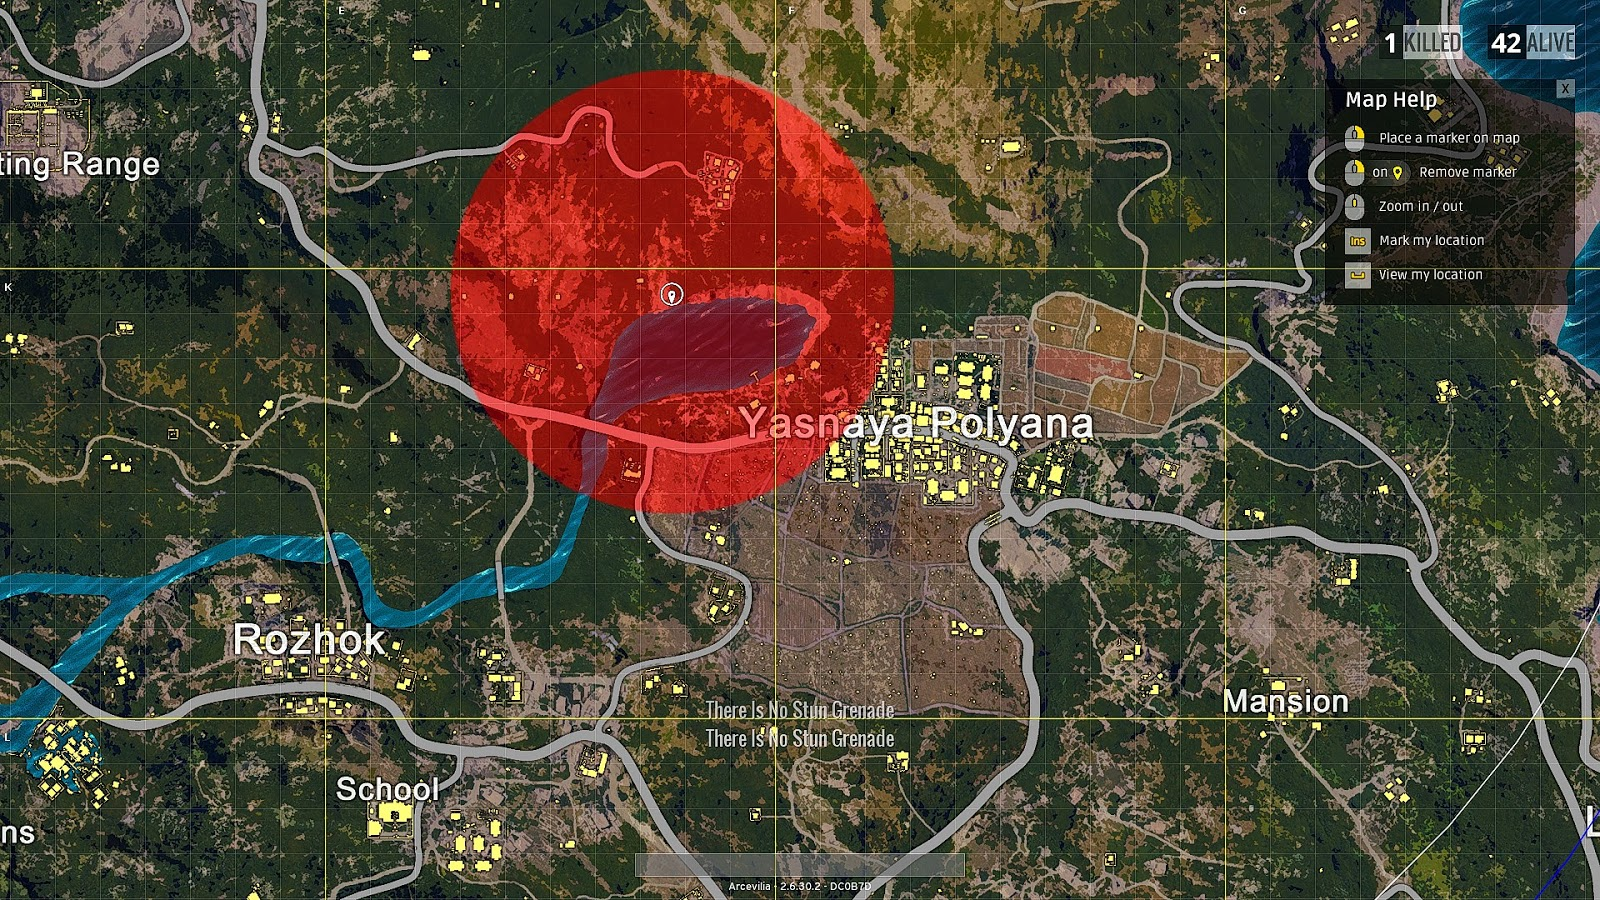 11. The Red Zone